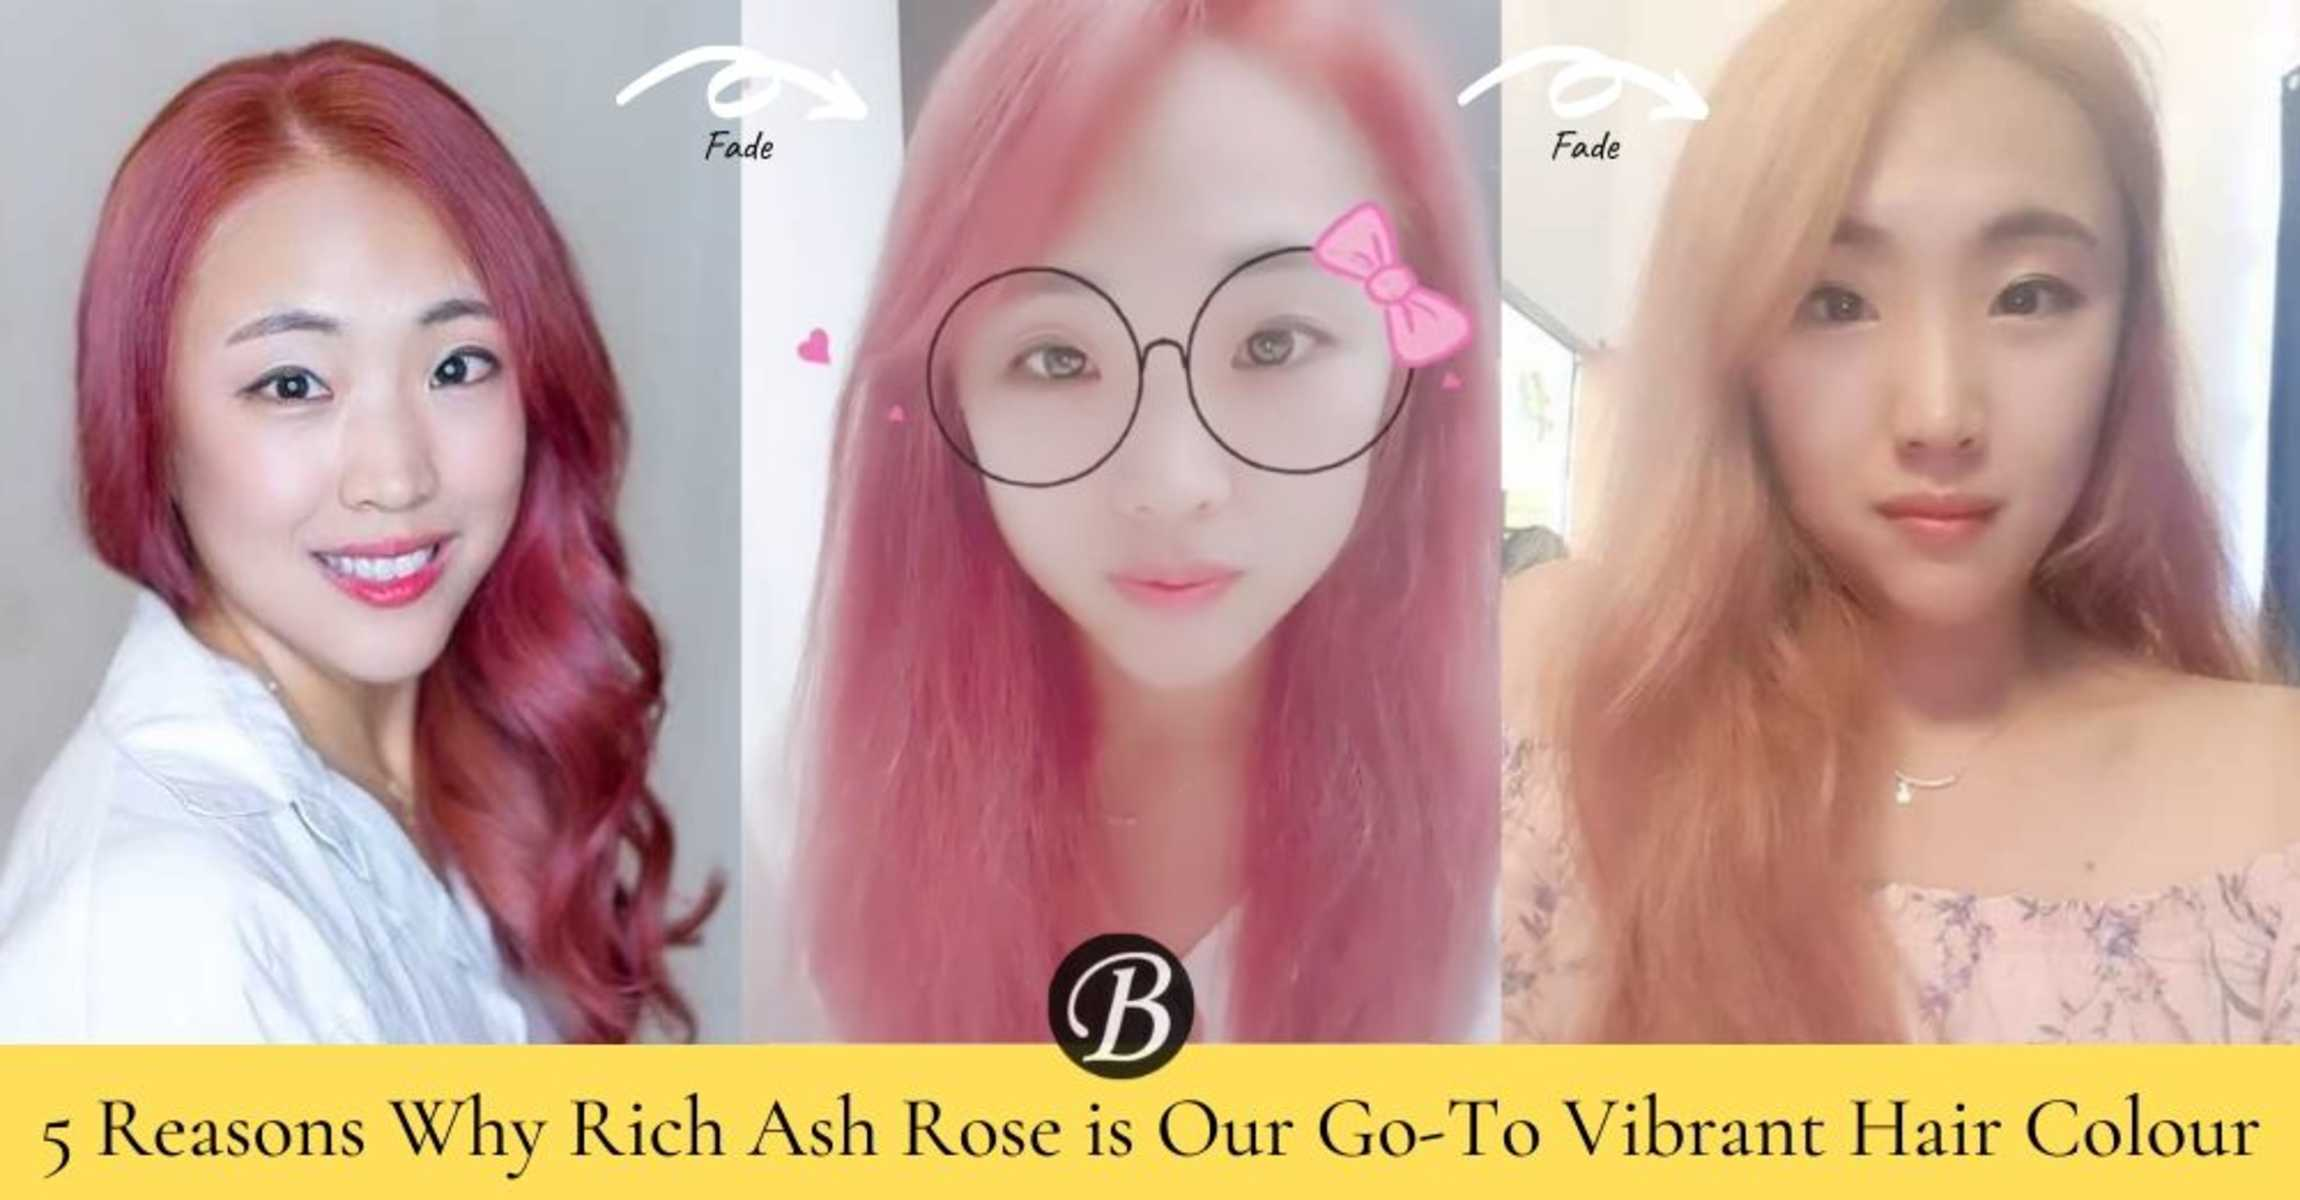 5 Reasons Why Rich Ash Rose is Our Favourite Vibrant Hair Colour for Asian Skin